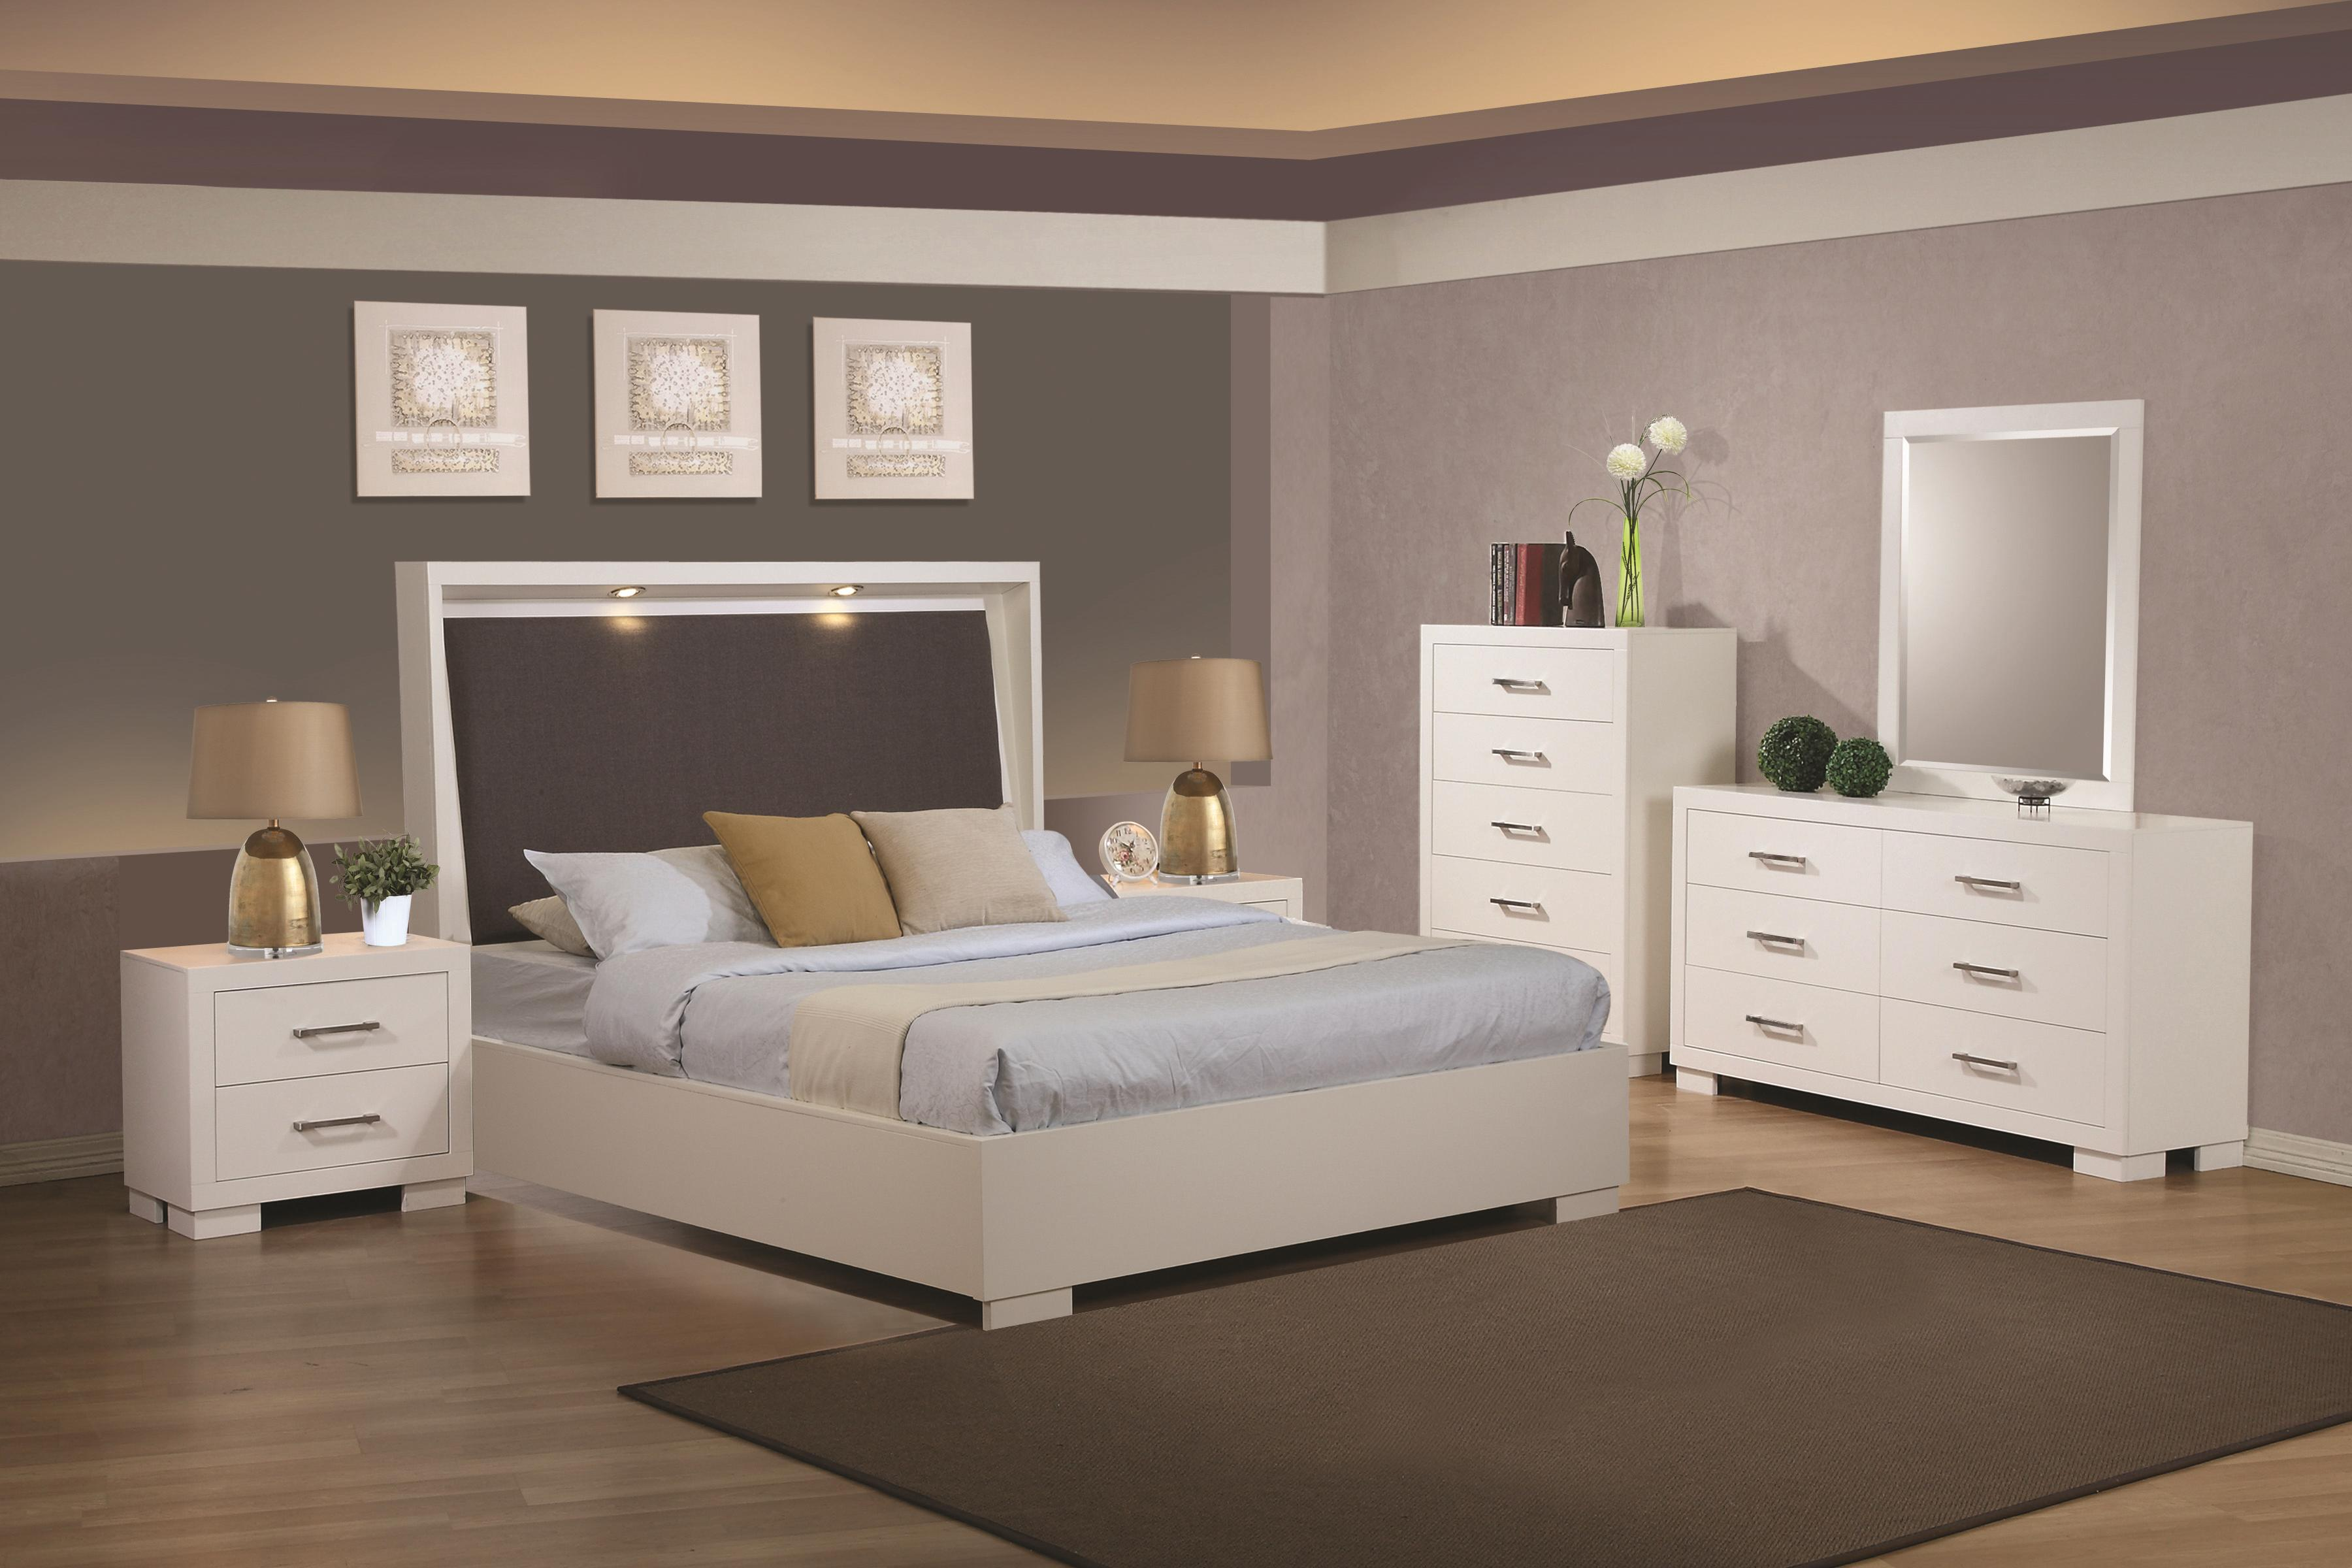 Coaster jessica king pier platform bed with rail seating and coaster jessica king pier platform bed with rail seating and lights coaster fine furniture amipublicfo Gallery